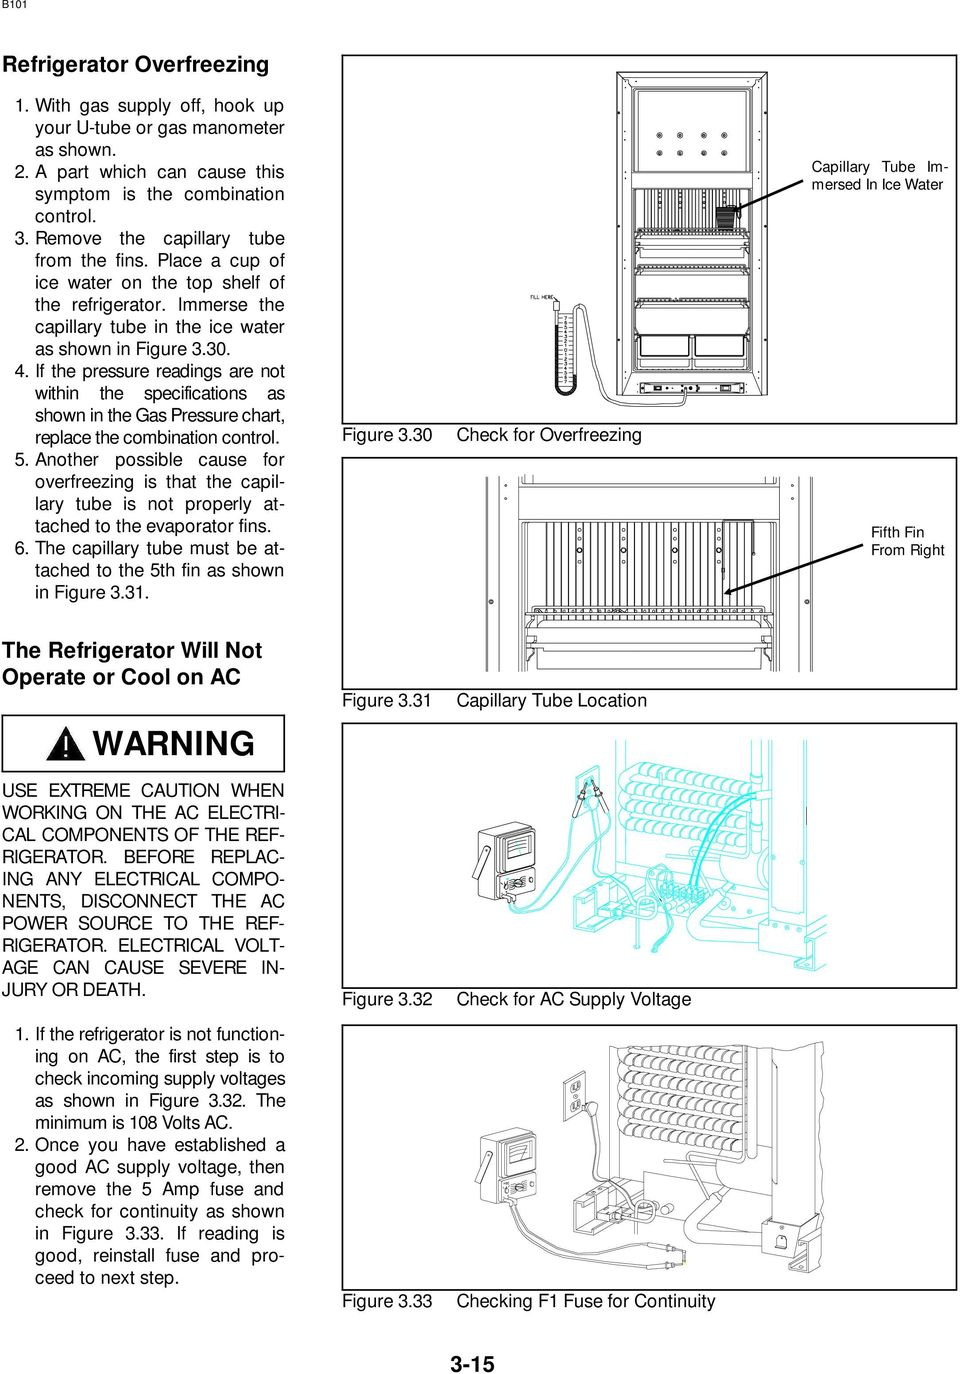 Norcold Repair Guide Models 442 443 452 453 462 463 482 Pdf Ac Dc Refrigerator Schematics If The Pressure Readings Are Not Within Specifications As Shown In Gas Chart